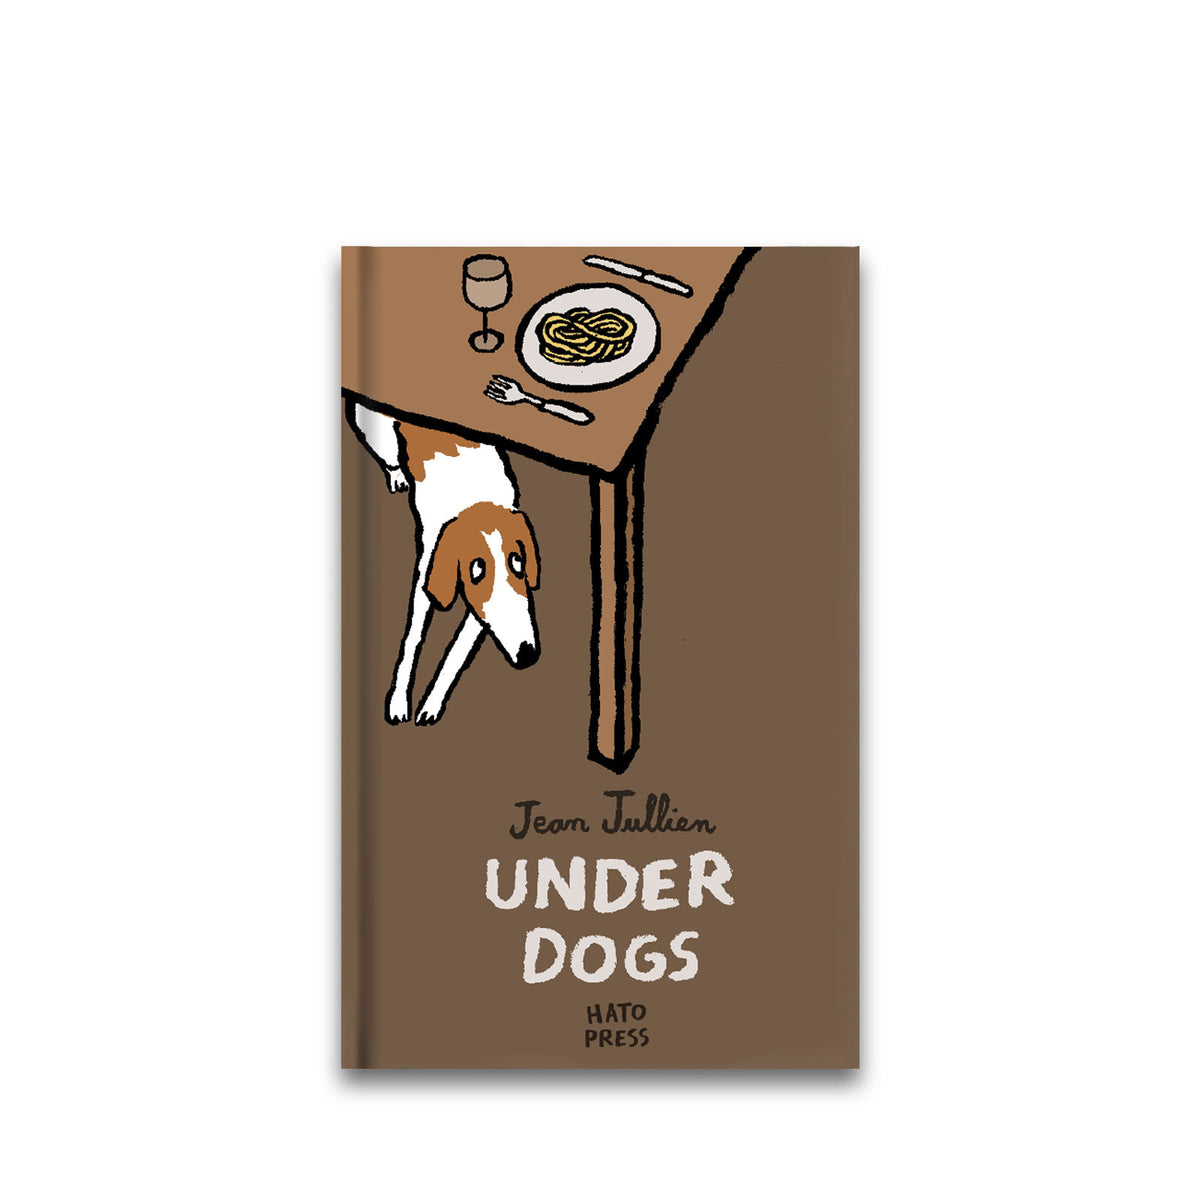 Under Dogs by Jean Jullien